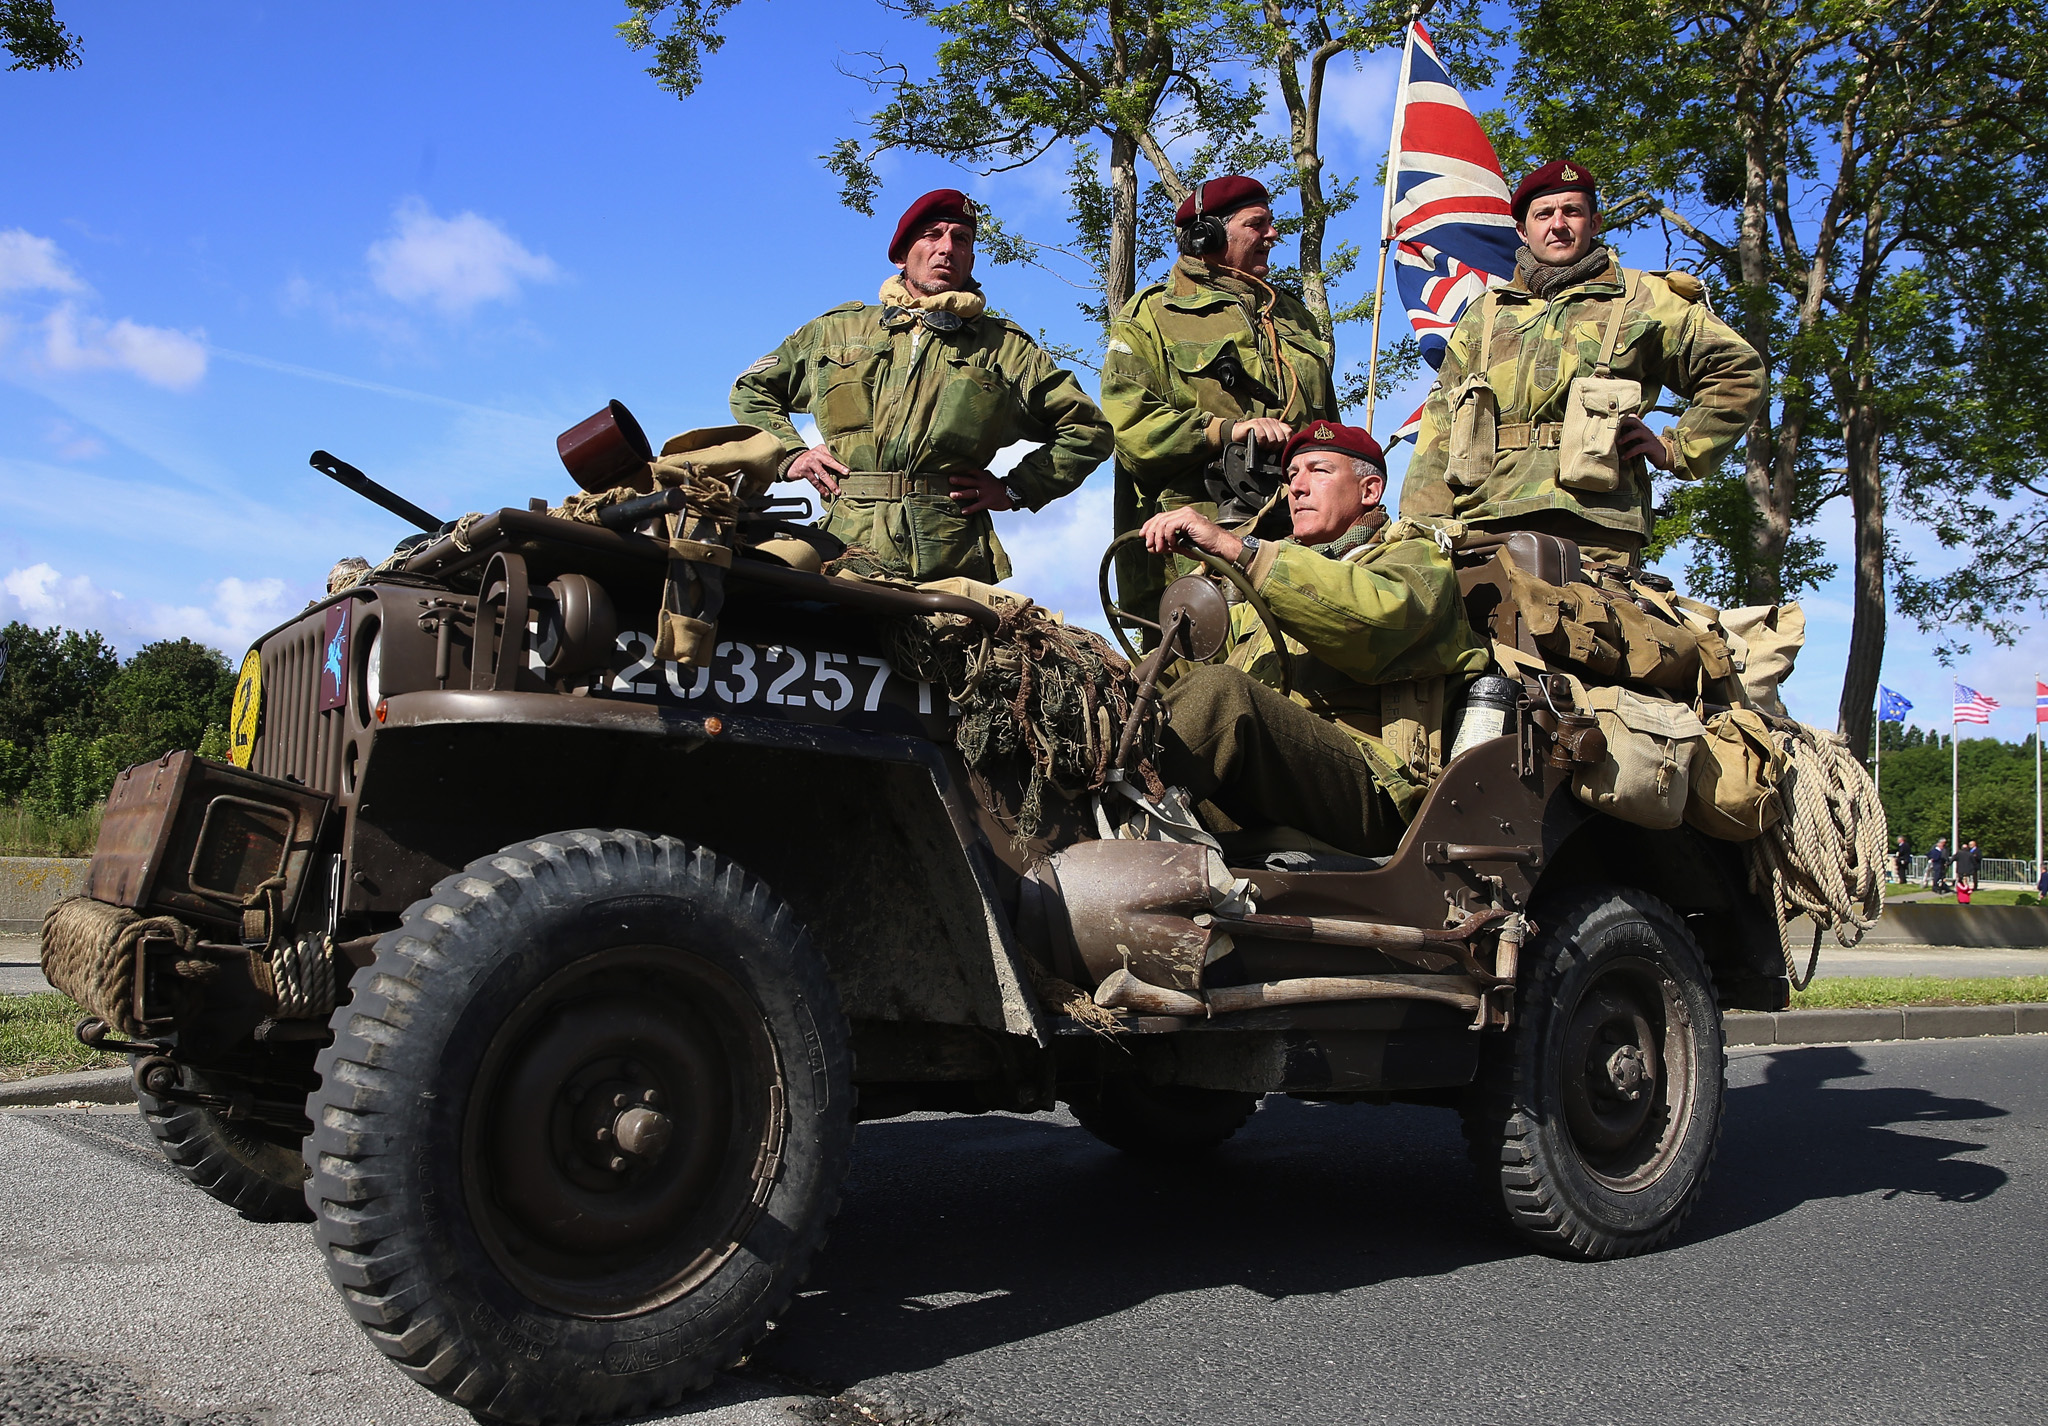 The 70th Anniversary Of The D-Day Landings Are Commemorated In Normandy...RANVILLE, FRANCE - JUNE 05:  Soldiers travelling on a vintage jeep cross Pegasus Bridge (also known as the BÈnouville Bridge) during D-Day Commemorations on June 5, 2014 in Ranville, France. Friday 6th June is the 70th anniversary of the D-Day landings which saw 156,000 troops from the allied countries including the United Kingdom and the United States join forces to launch an audacious attack on the beaches of Normandy,  these assaults are credited with the eventual defeat of Nazi Germany. A series of events commemorating the 70th anniversary are planned for the week with many heads of state travelling to the famous beaches to pay their respects to those who lost their lives.  (Photo by Chris Jackson/Getty Images)